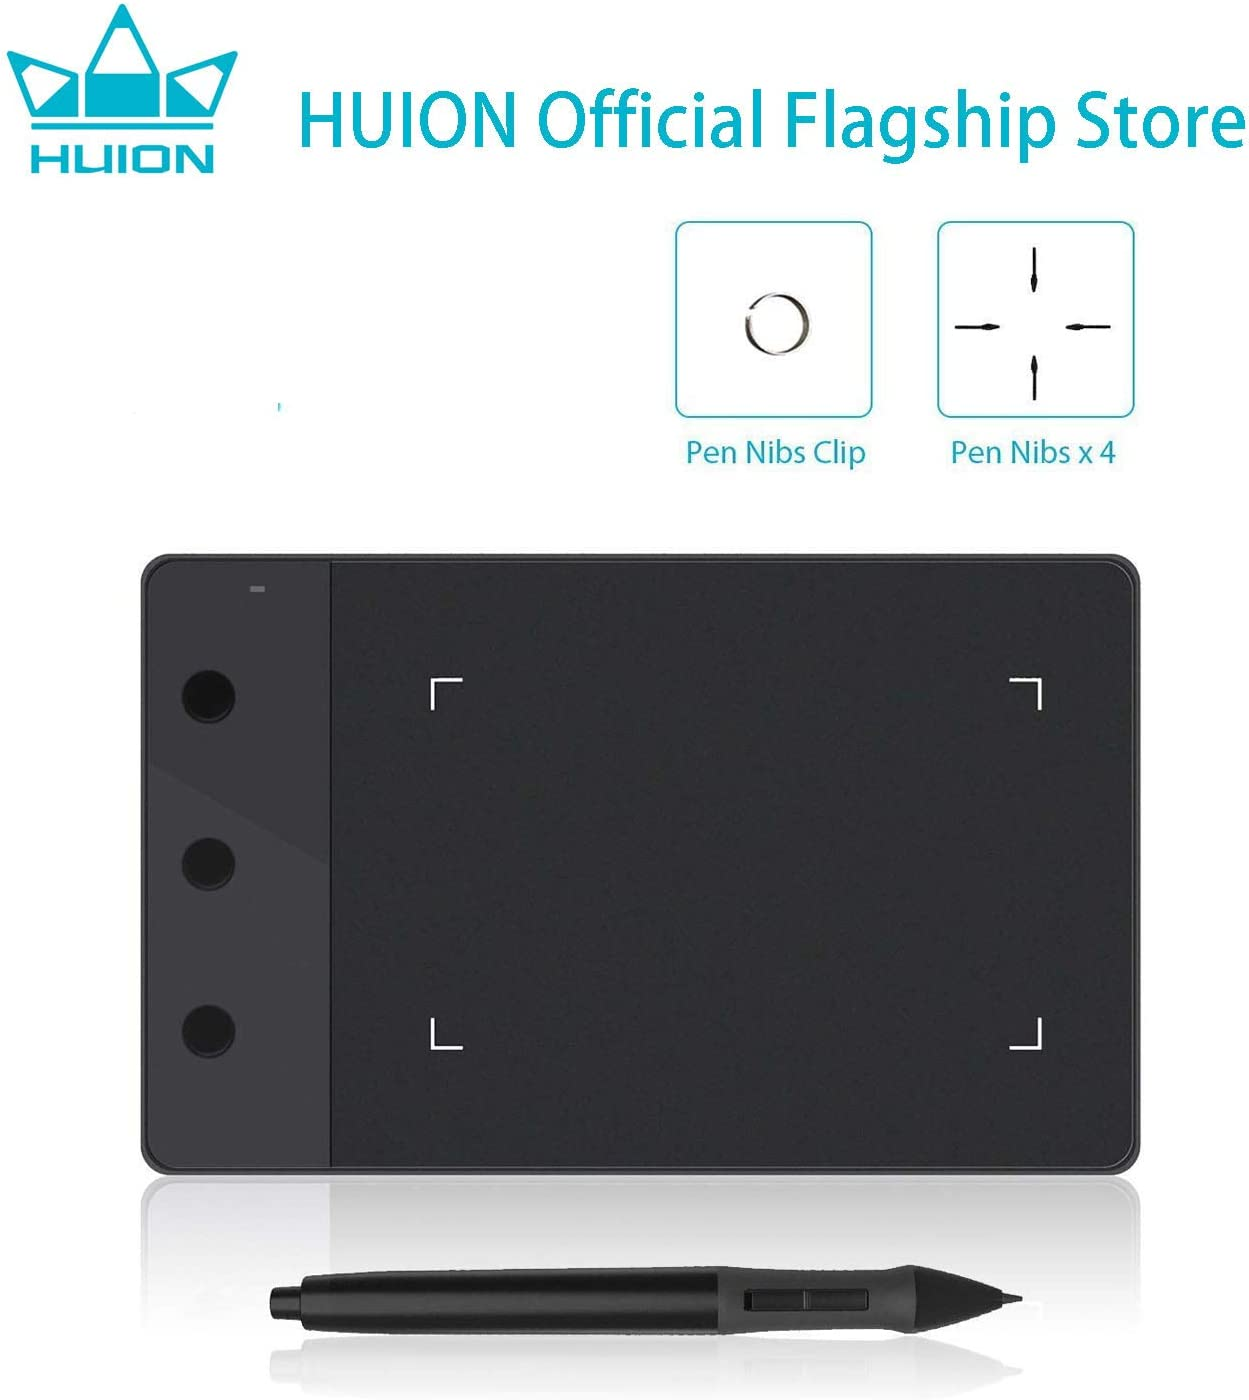 Huion 580 USB Digital Graphic Drawing Tablet 8 x 5 Inch for Art Drawing US Ship